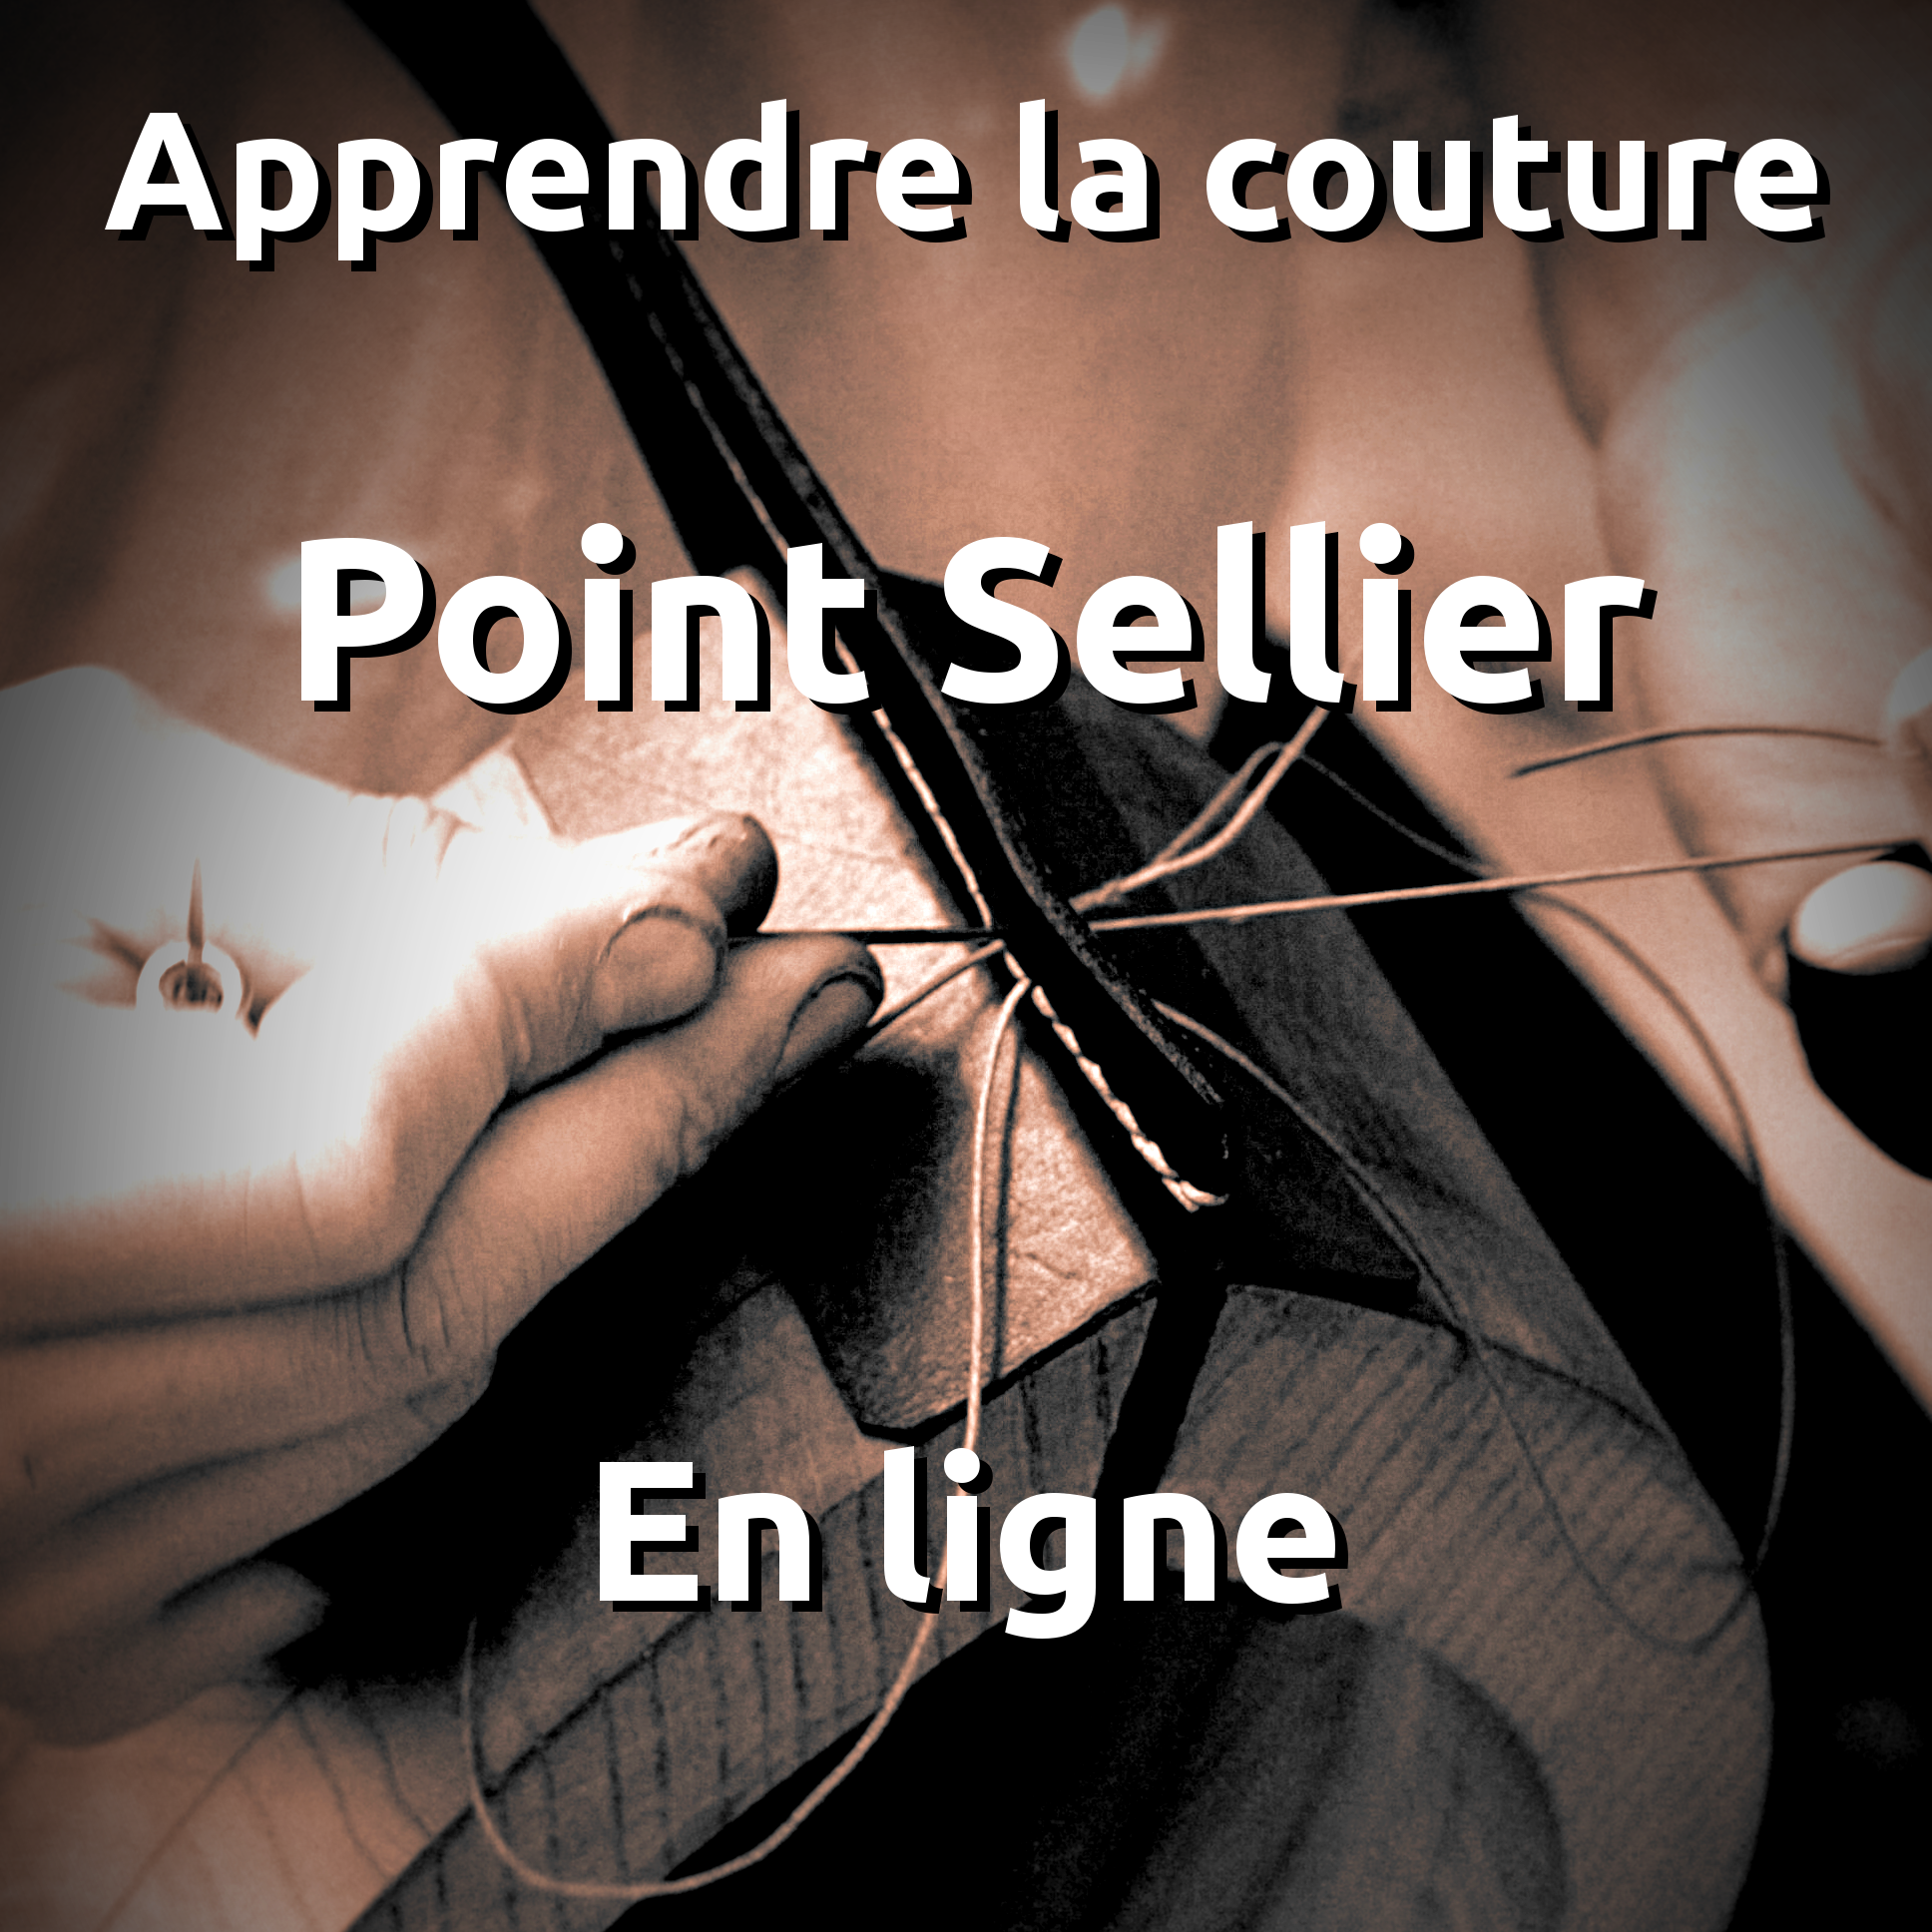 formation stage apprendre couture point sellier maroquinerie travail du cuir